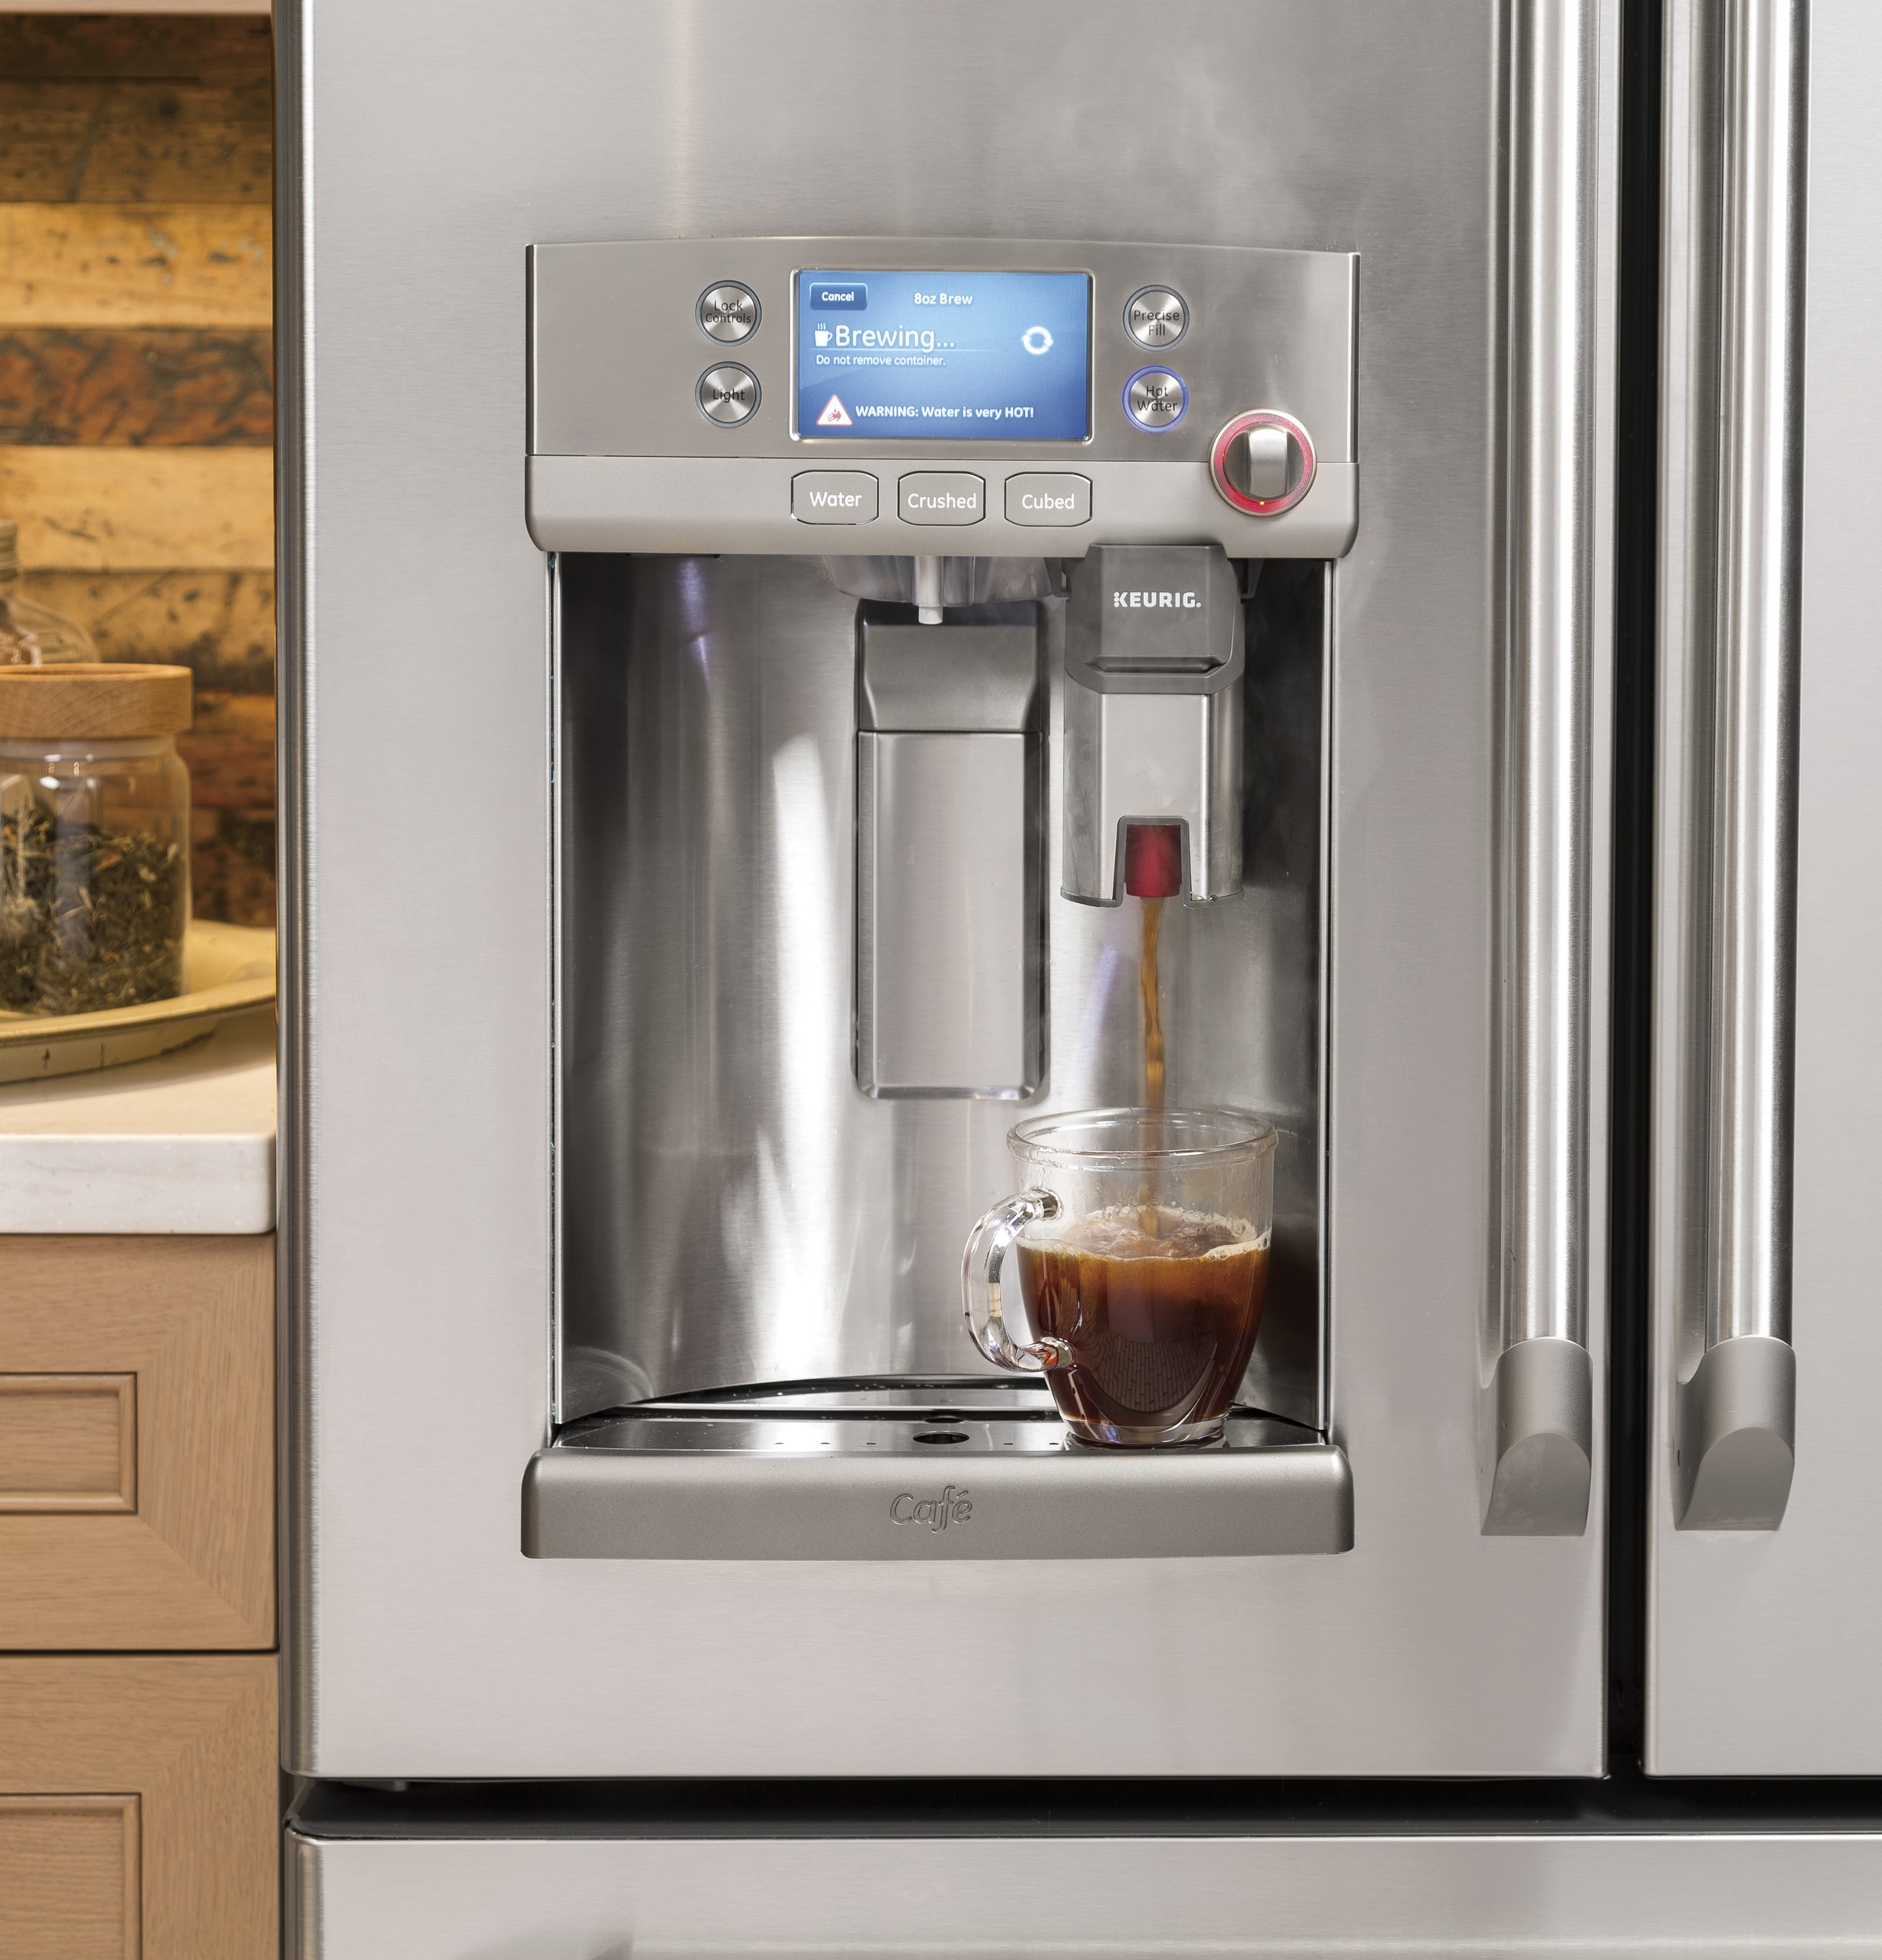 exciting cook stoves at lowes. GE  Cafe Series Refrigerator with Keurig K Cup Brewing System